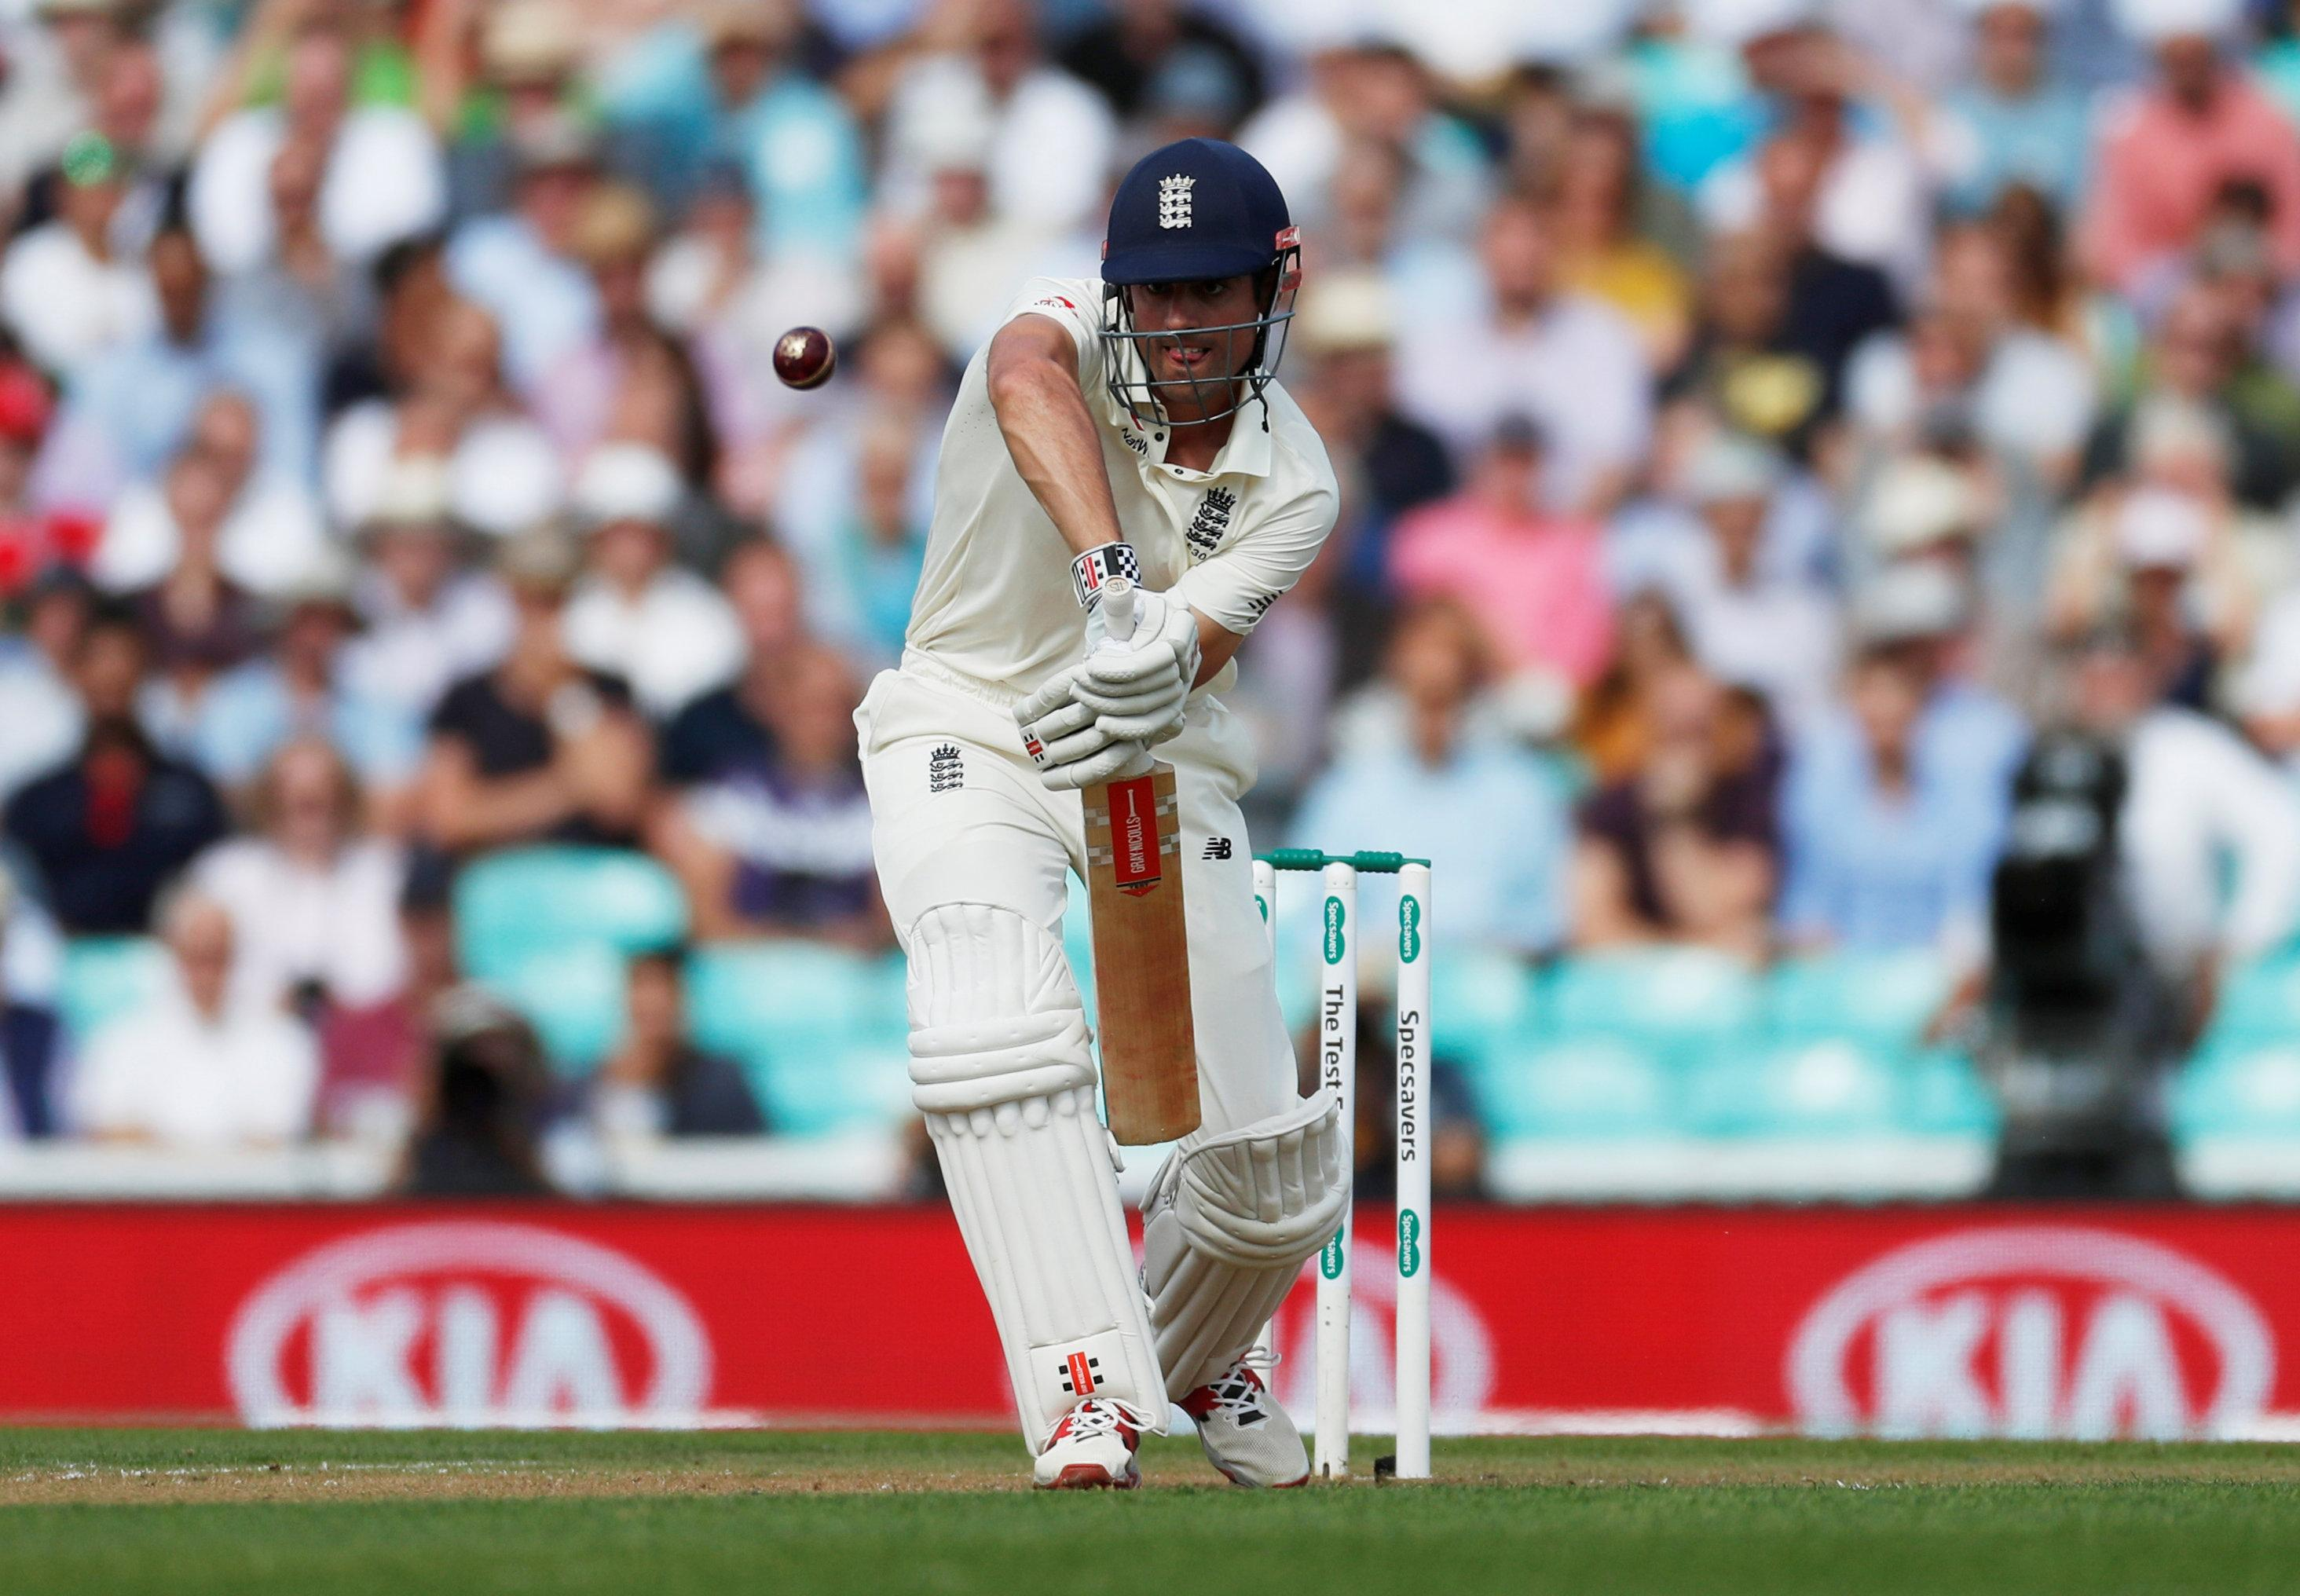 Alastair Cook has been a key figure in England's squad since his debut in 2006